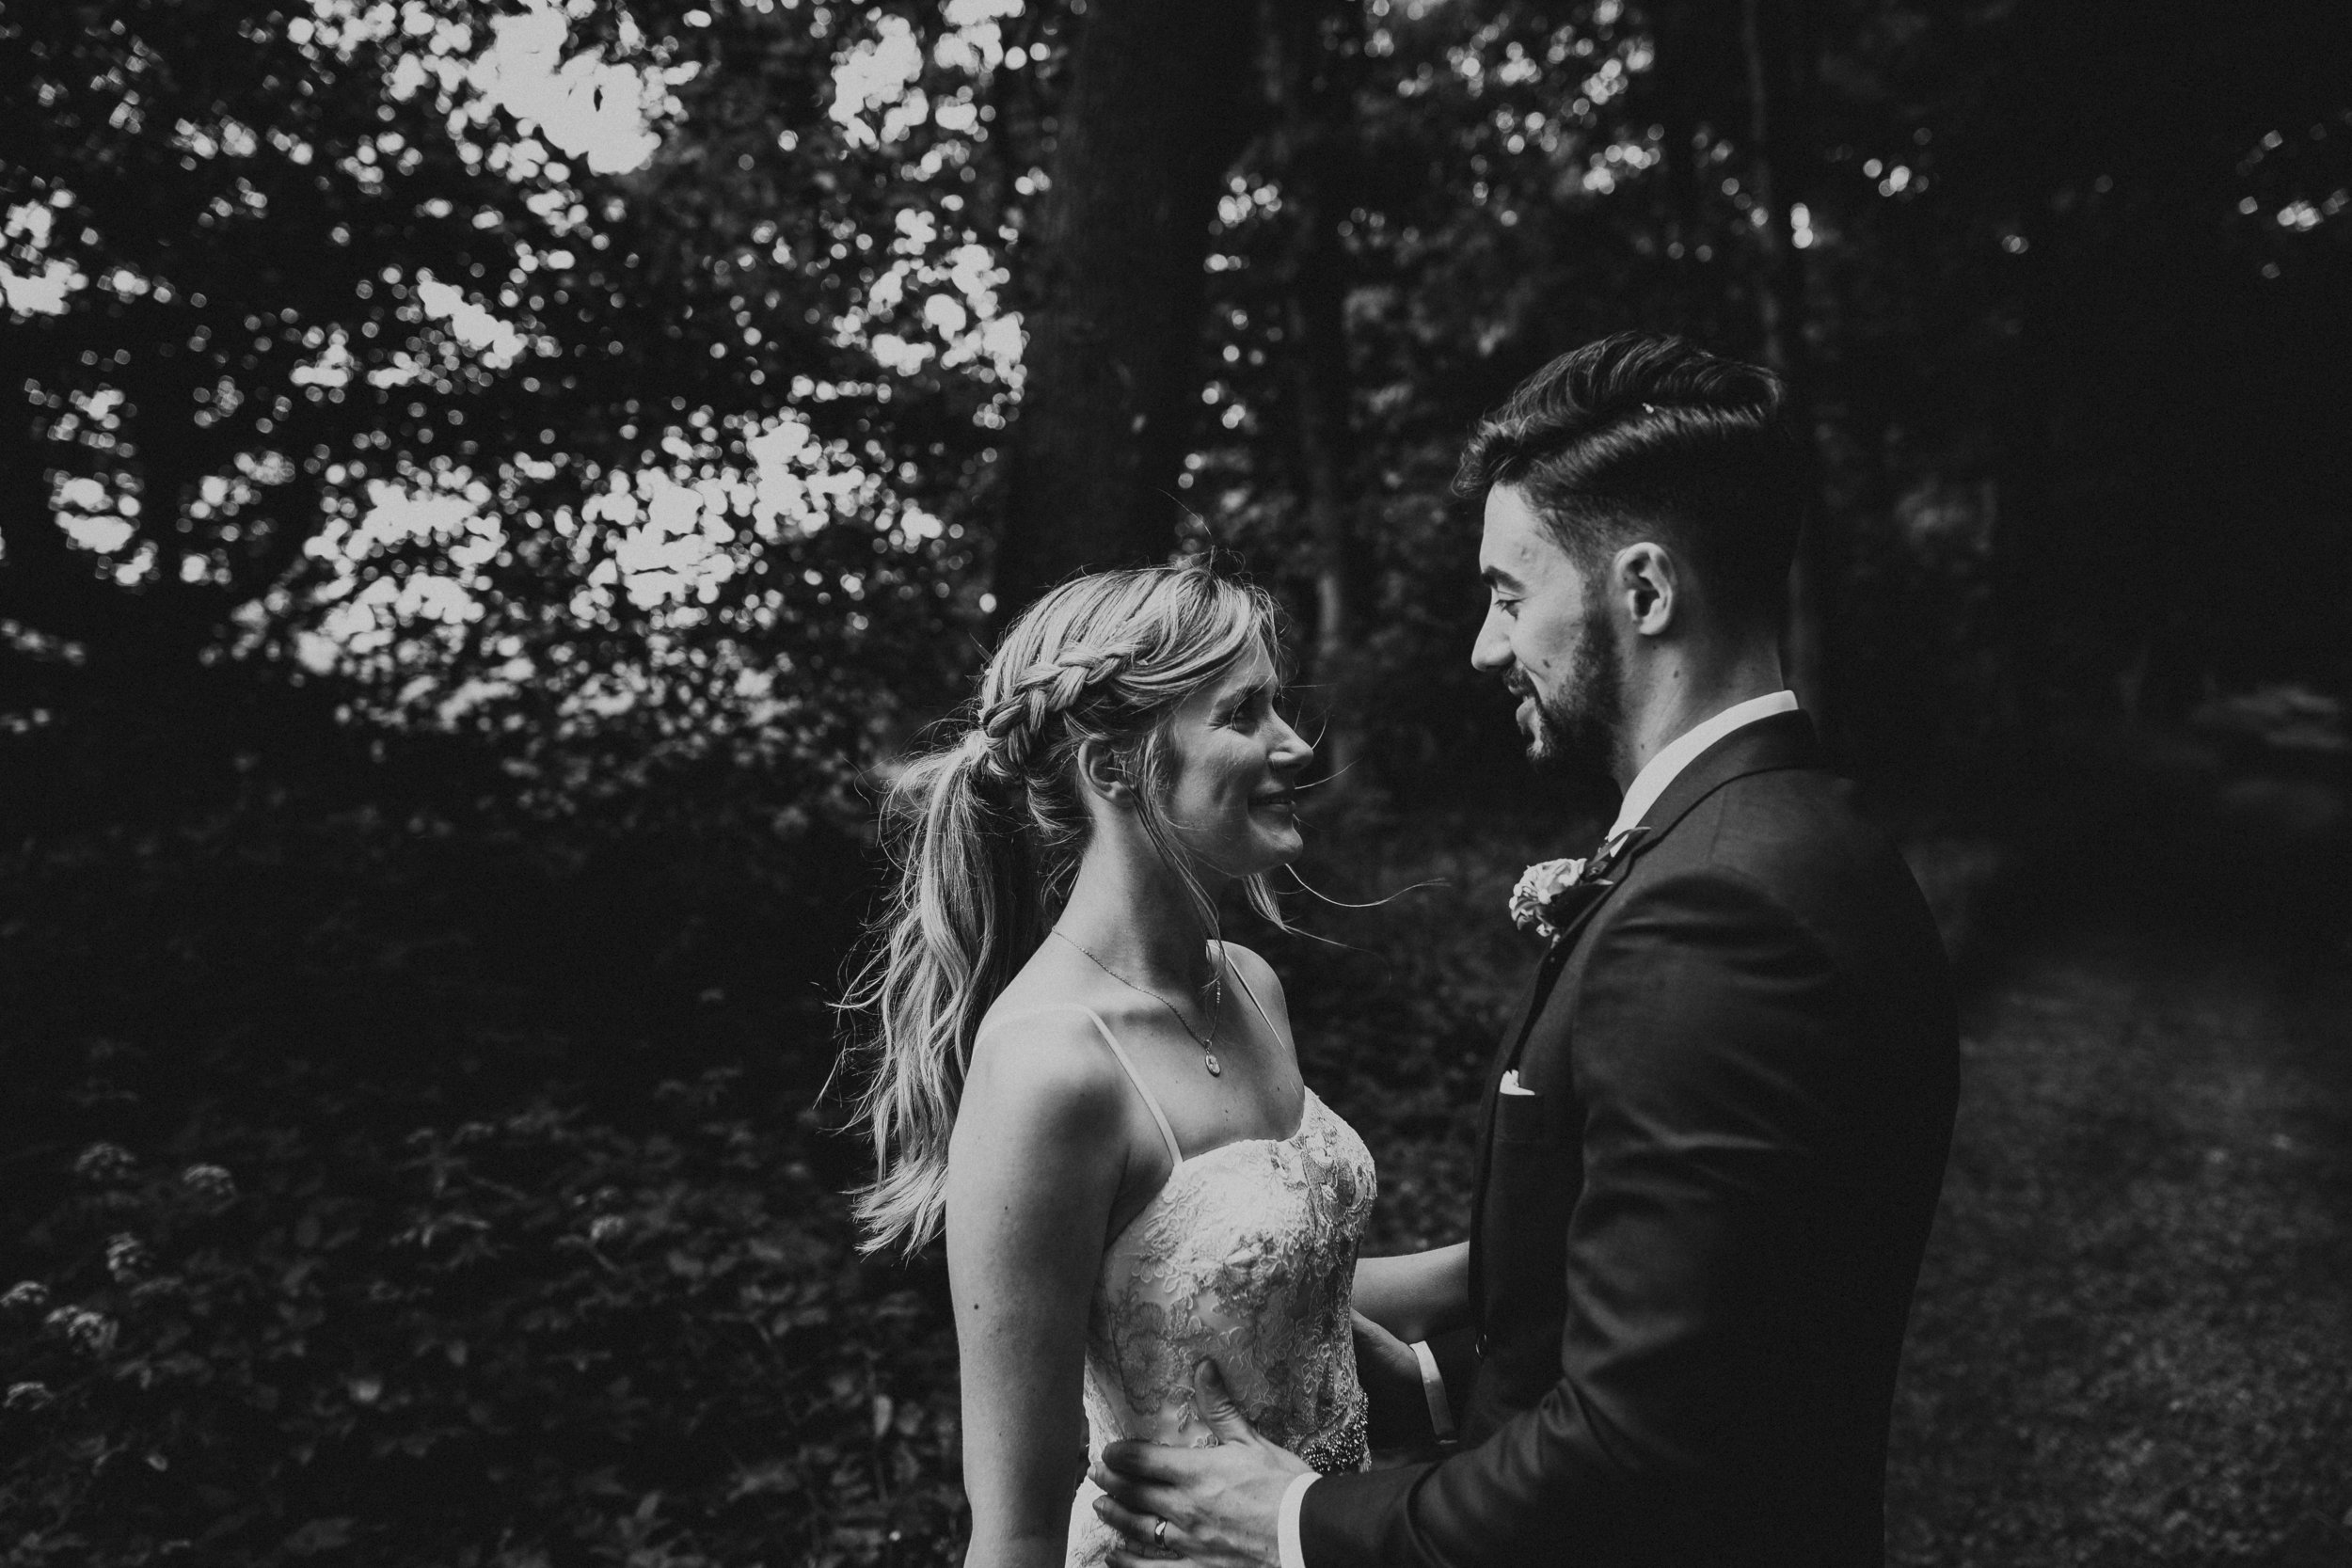 PJ_PHILLIPS_PHOTOGRAPHY_EDINBURGH_WEDDERBURN_BARNS_WEDDING_EDINBURGH_WEDDING_PHOTOGRAPHER_93.jpg